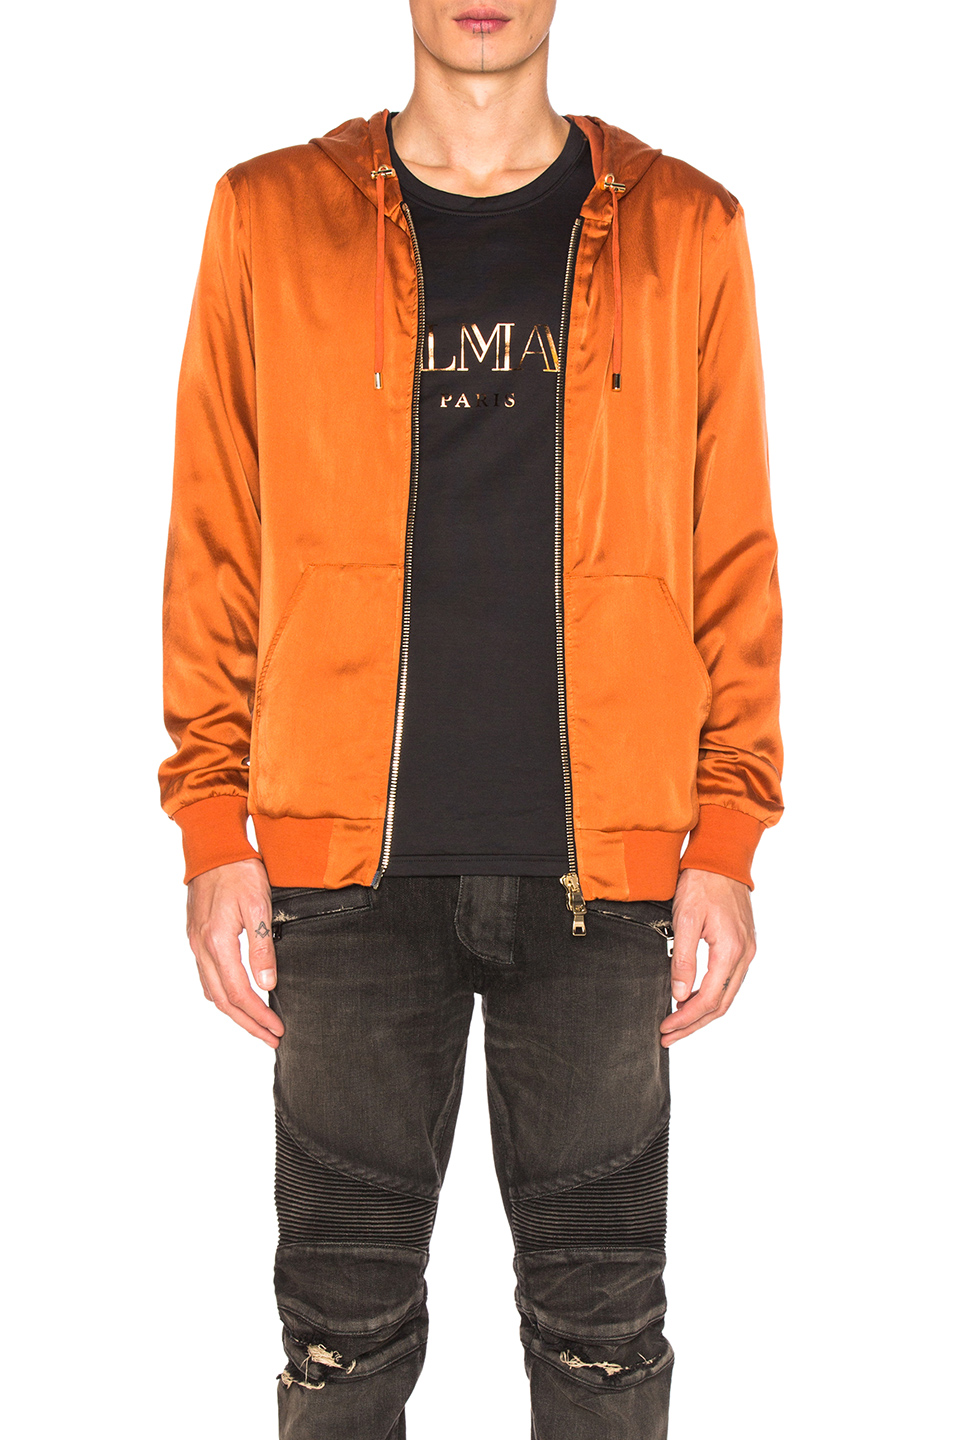 BALMAIN Bomber Jacket in Orange